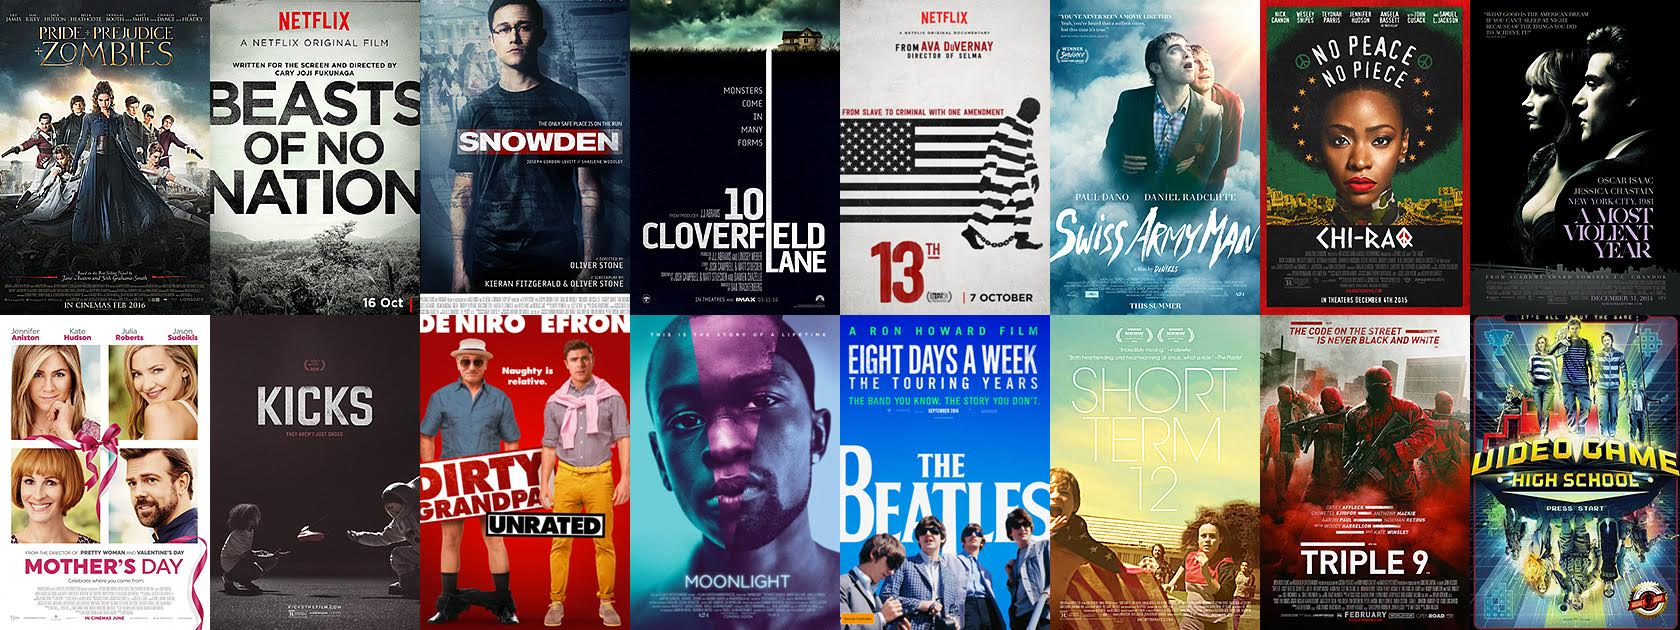 """""""We have certainly serviced major motion pictures [like] 10 Cloverfield Lane...but most of our productions are movies you've never heard of...even ultra-low budget pictures. And that's awesome."""" - Pliny"""